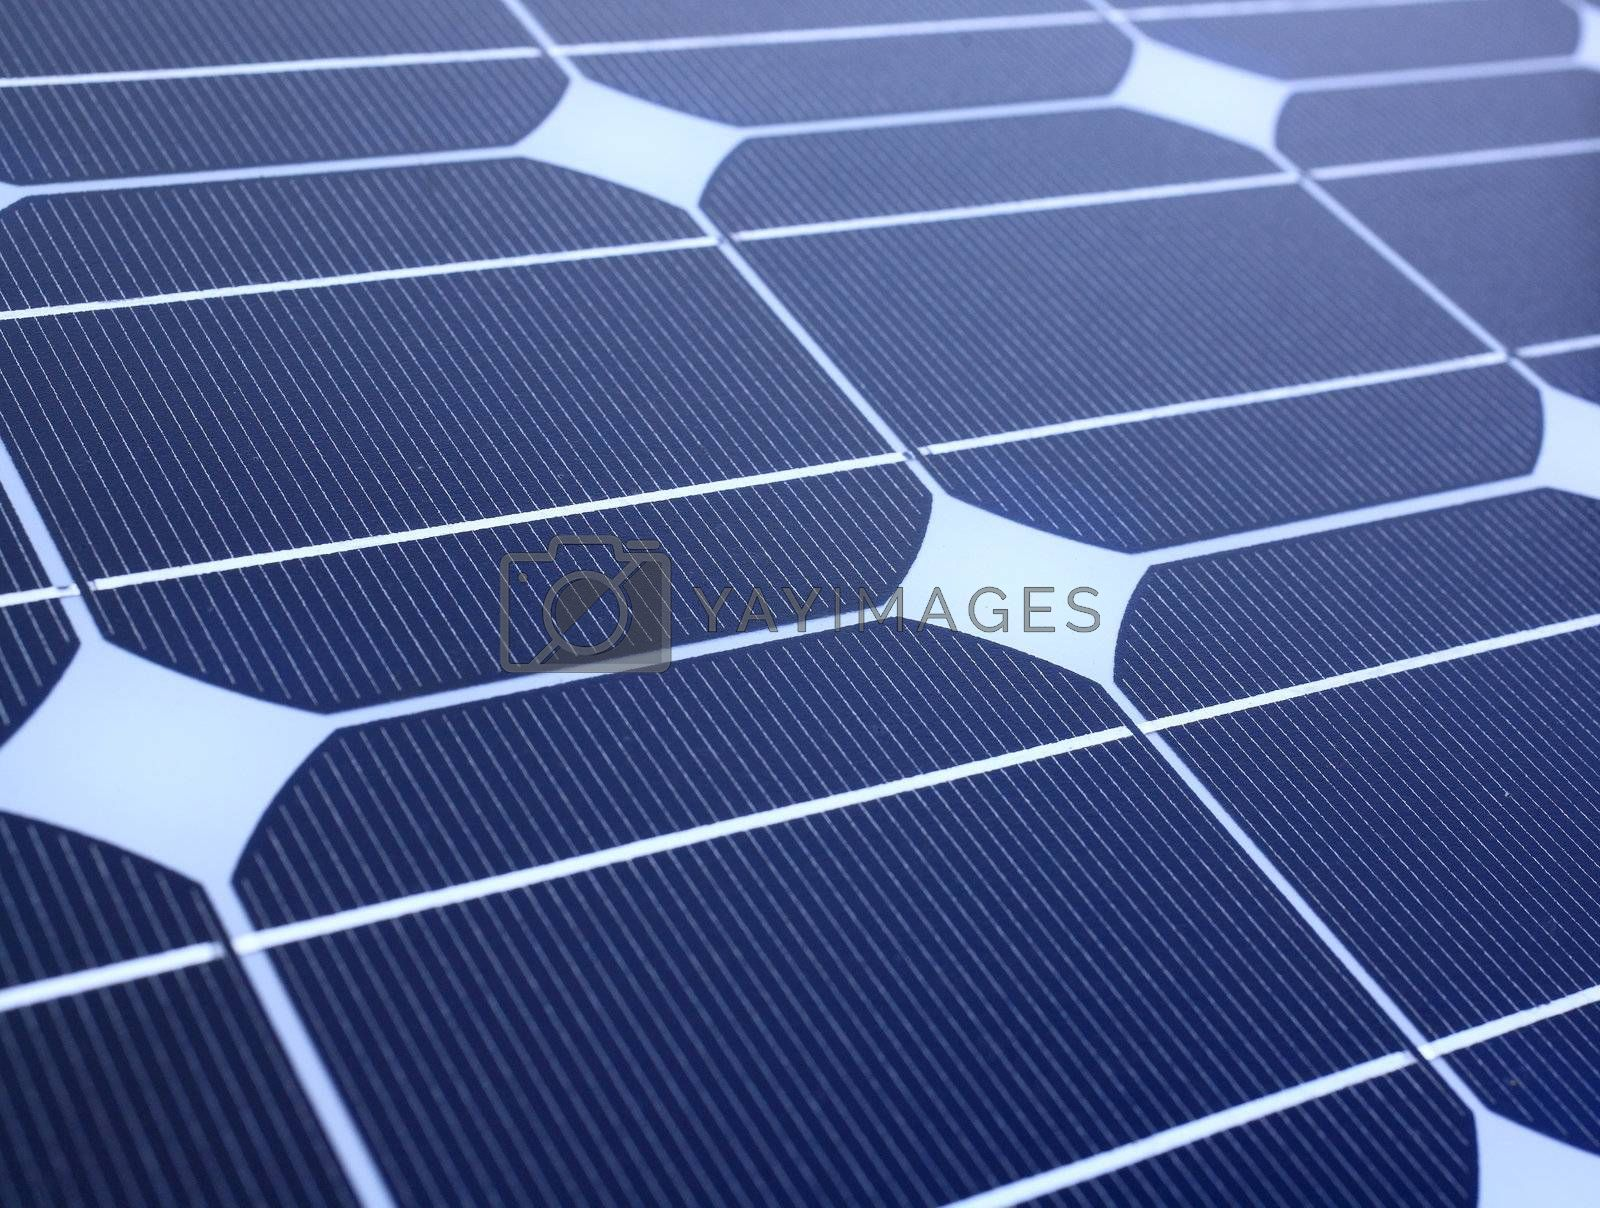 Royalty free image of solar panel by leungchopan